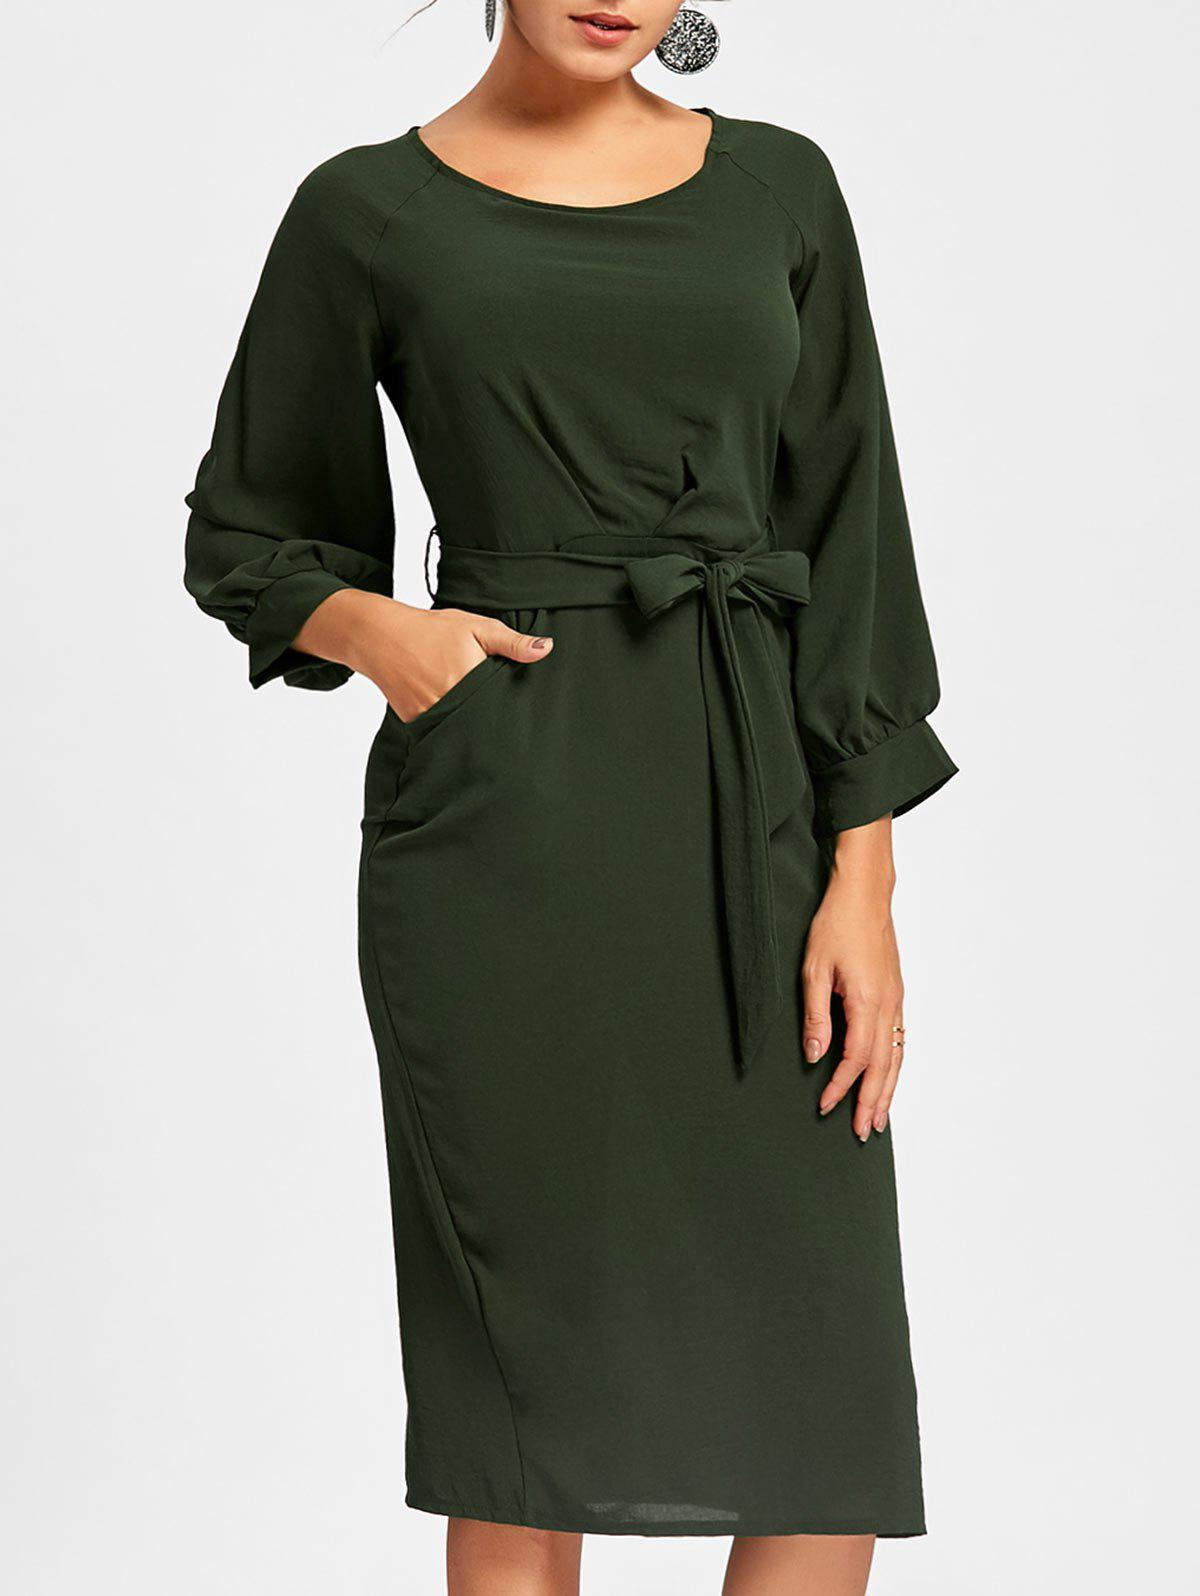 Back Slit Midi Sheath Dress - DEEP GREEN XL